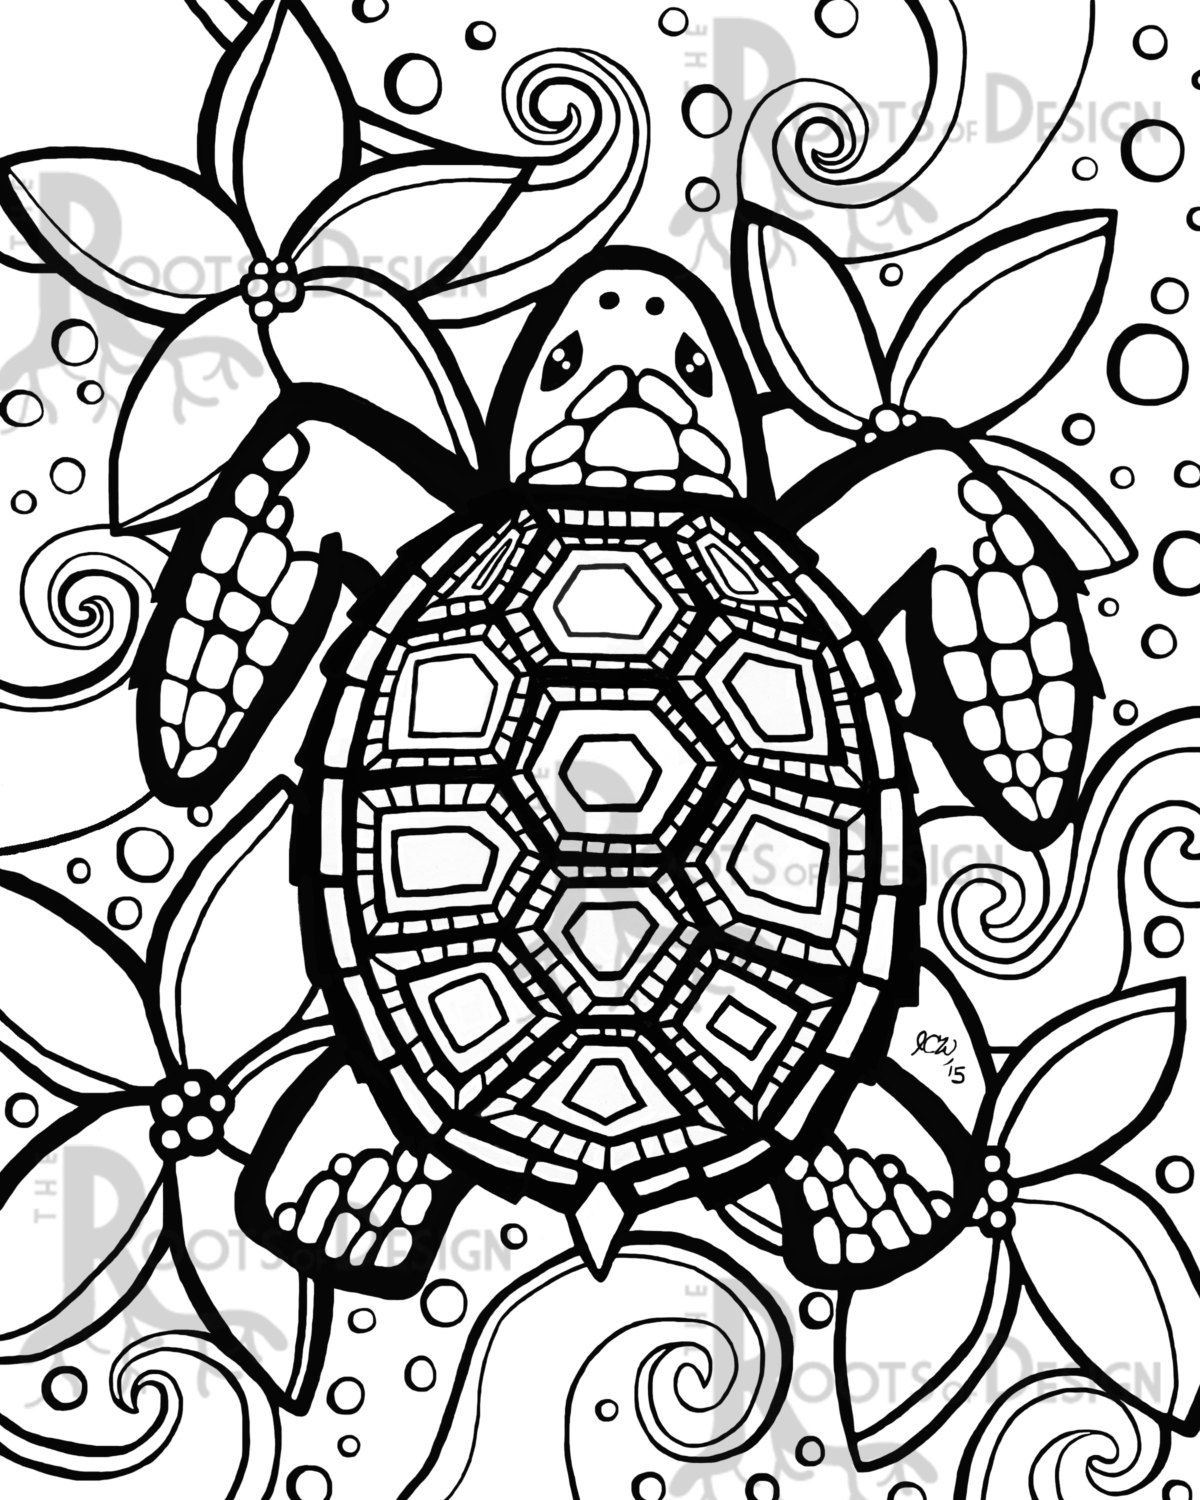 INSTANT DOWNLOAD Coloring Page Turtle zentangle inspired  Etsy